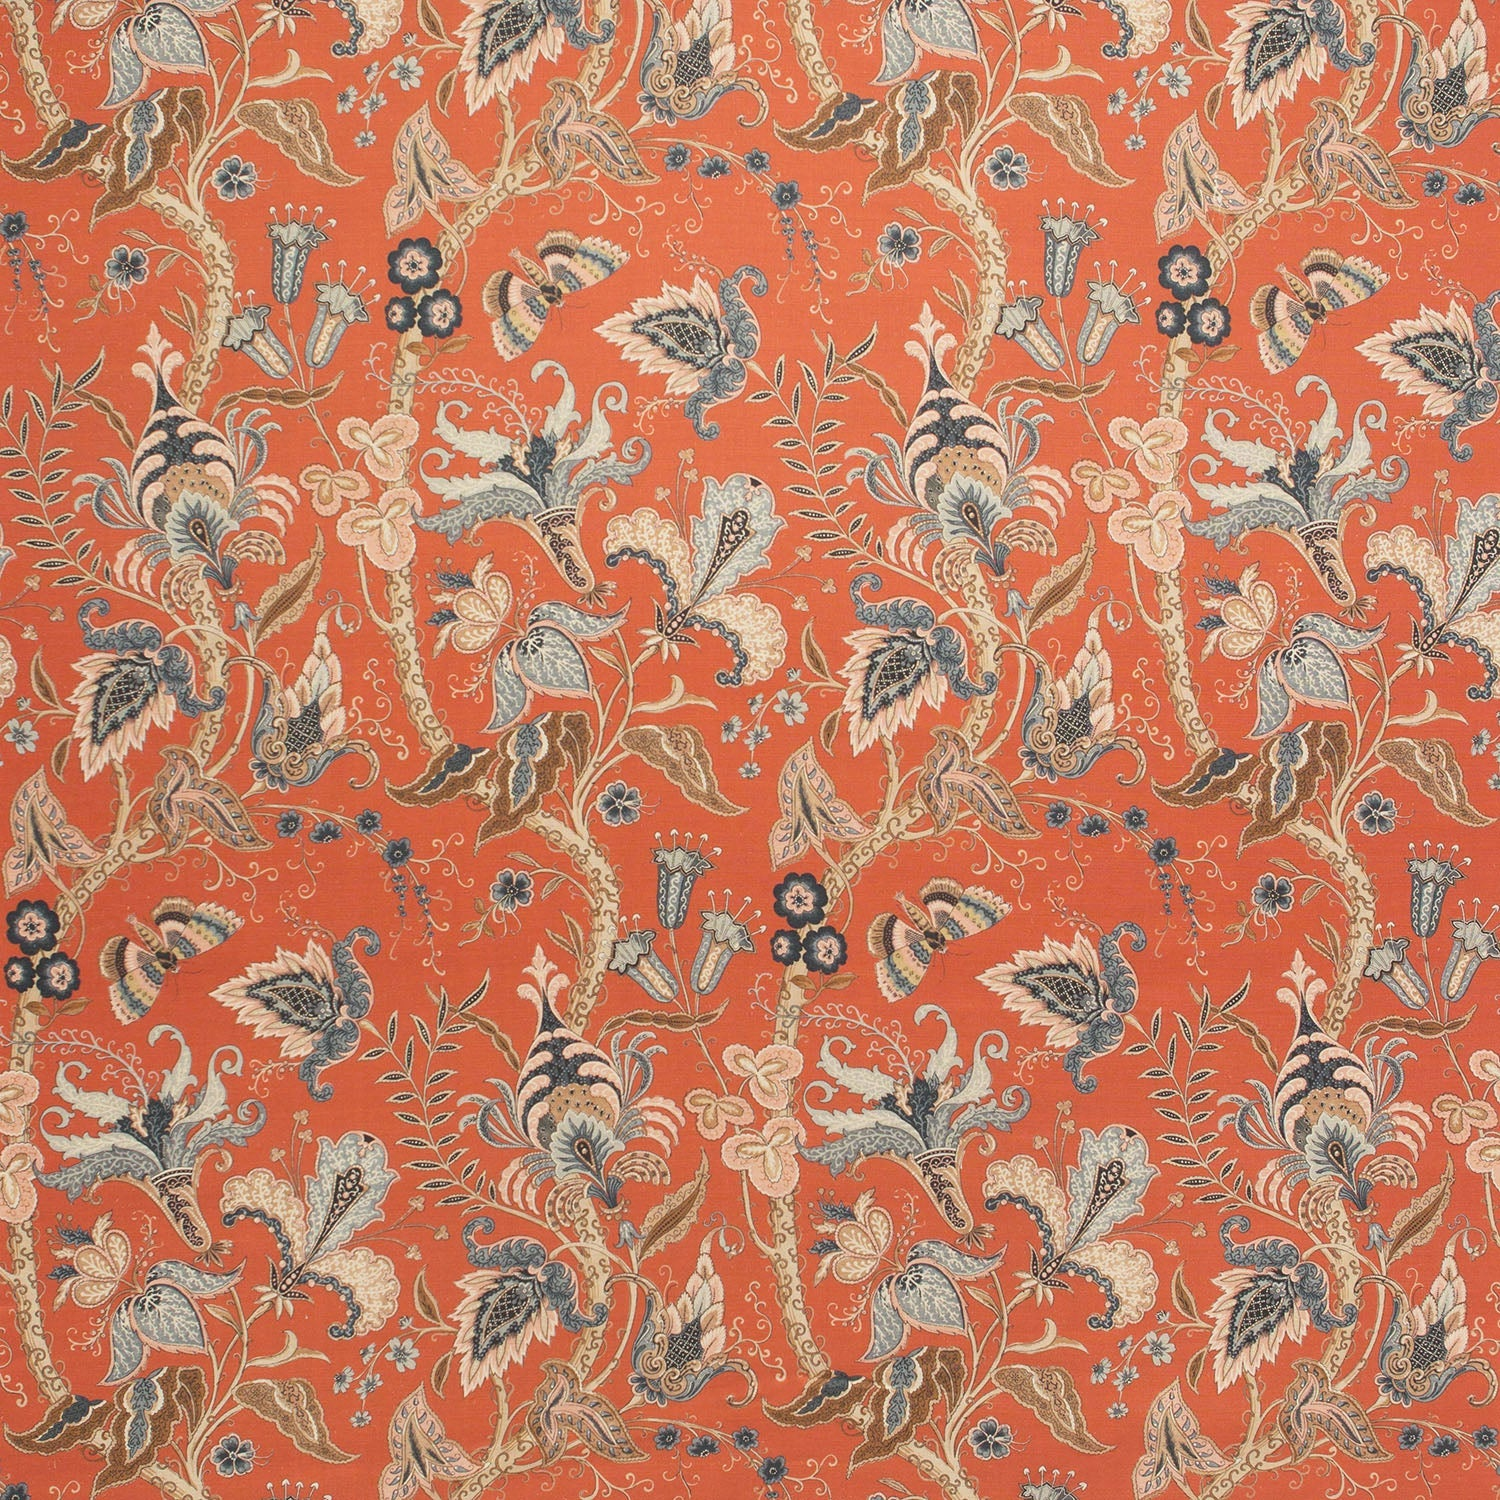 Fabric swatch of a orange fabric with a stylised floral design